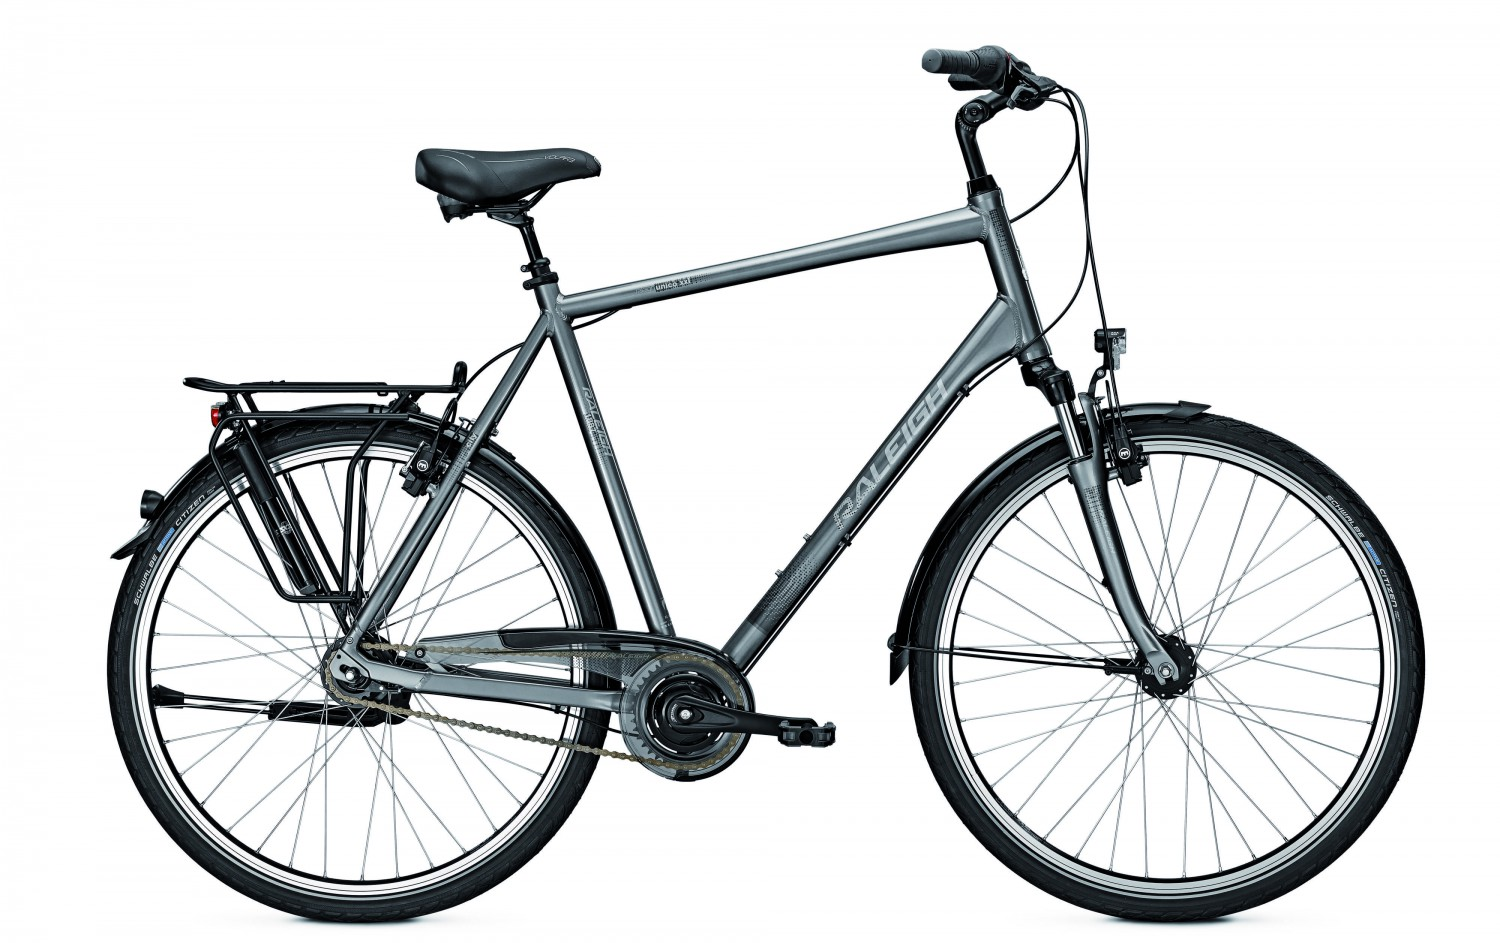 raleigh citybike unico xxl herren bis 170 kg zugelassen div gr ssen r cktritt radsport. Black Bedroom Furniture Sets. Home Design Ideas